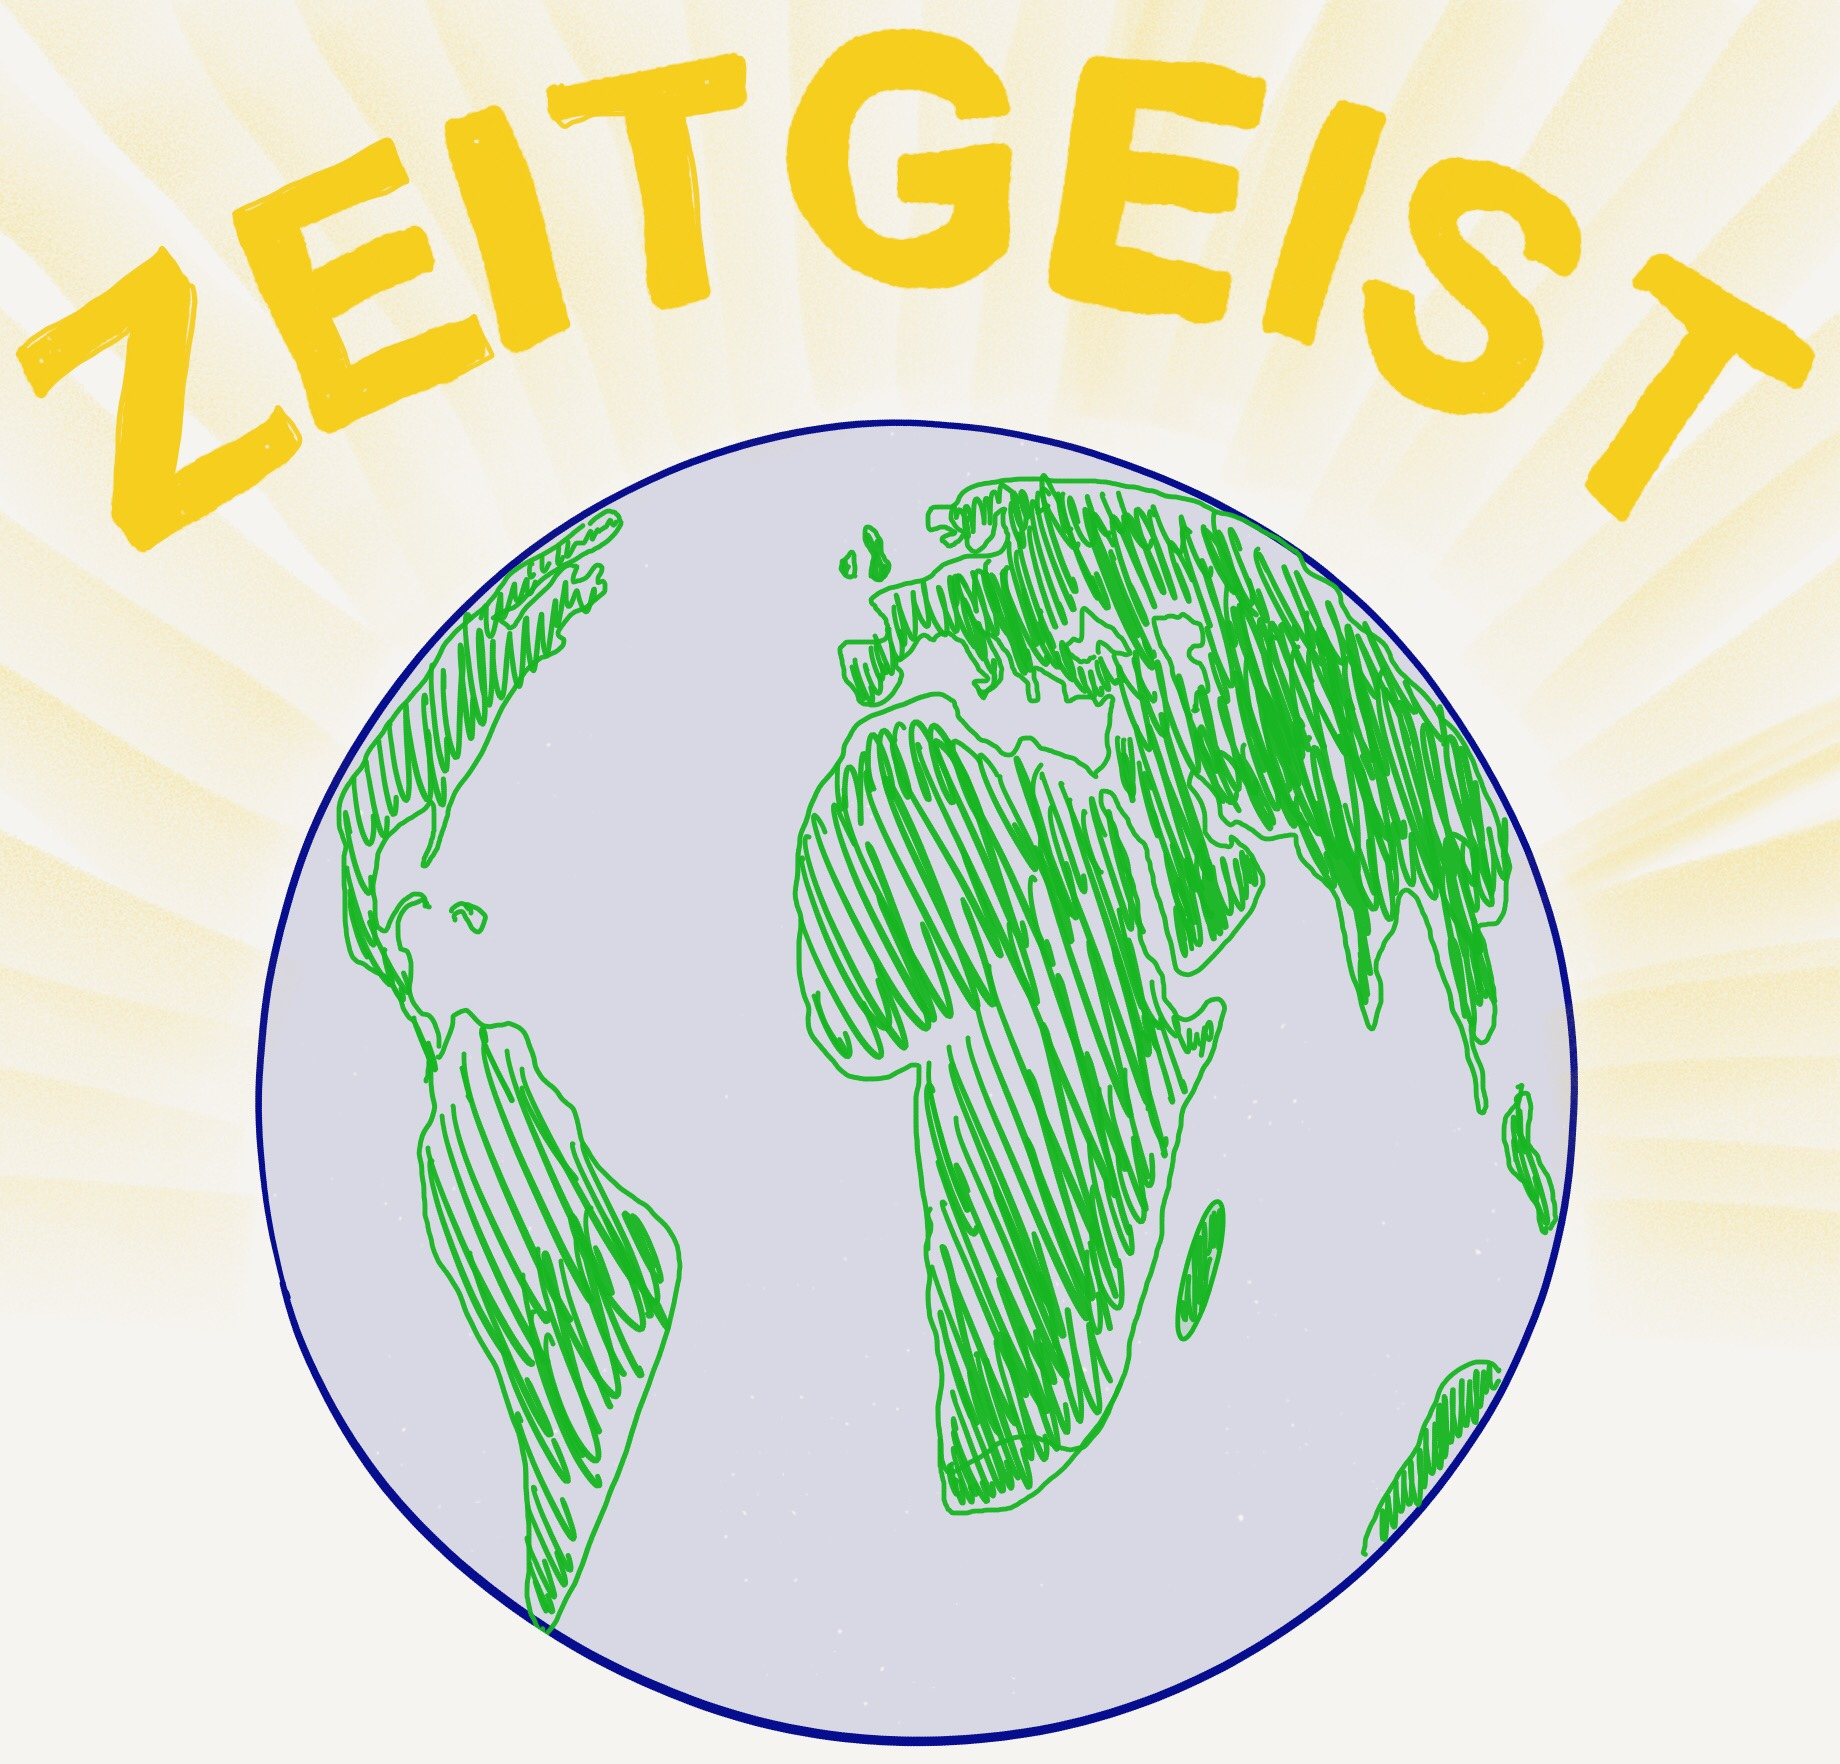 The globe with the word zeitgeist floating above